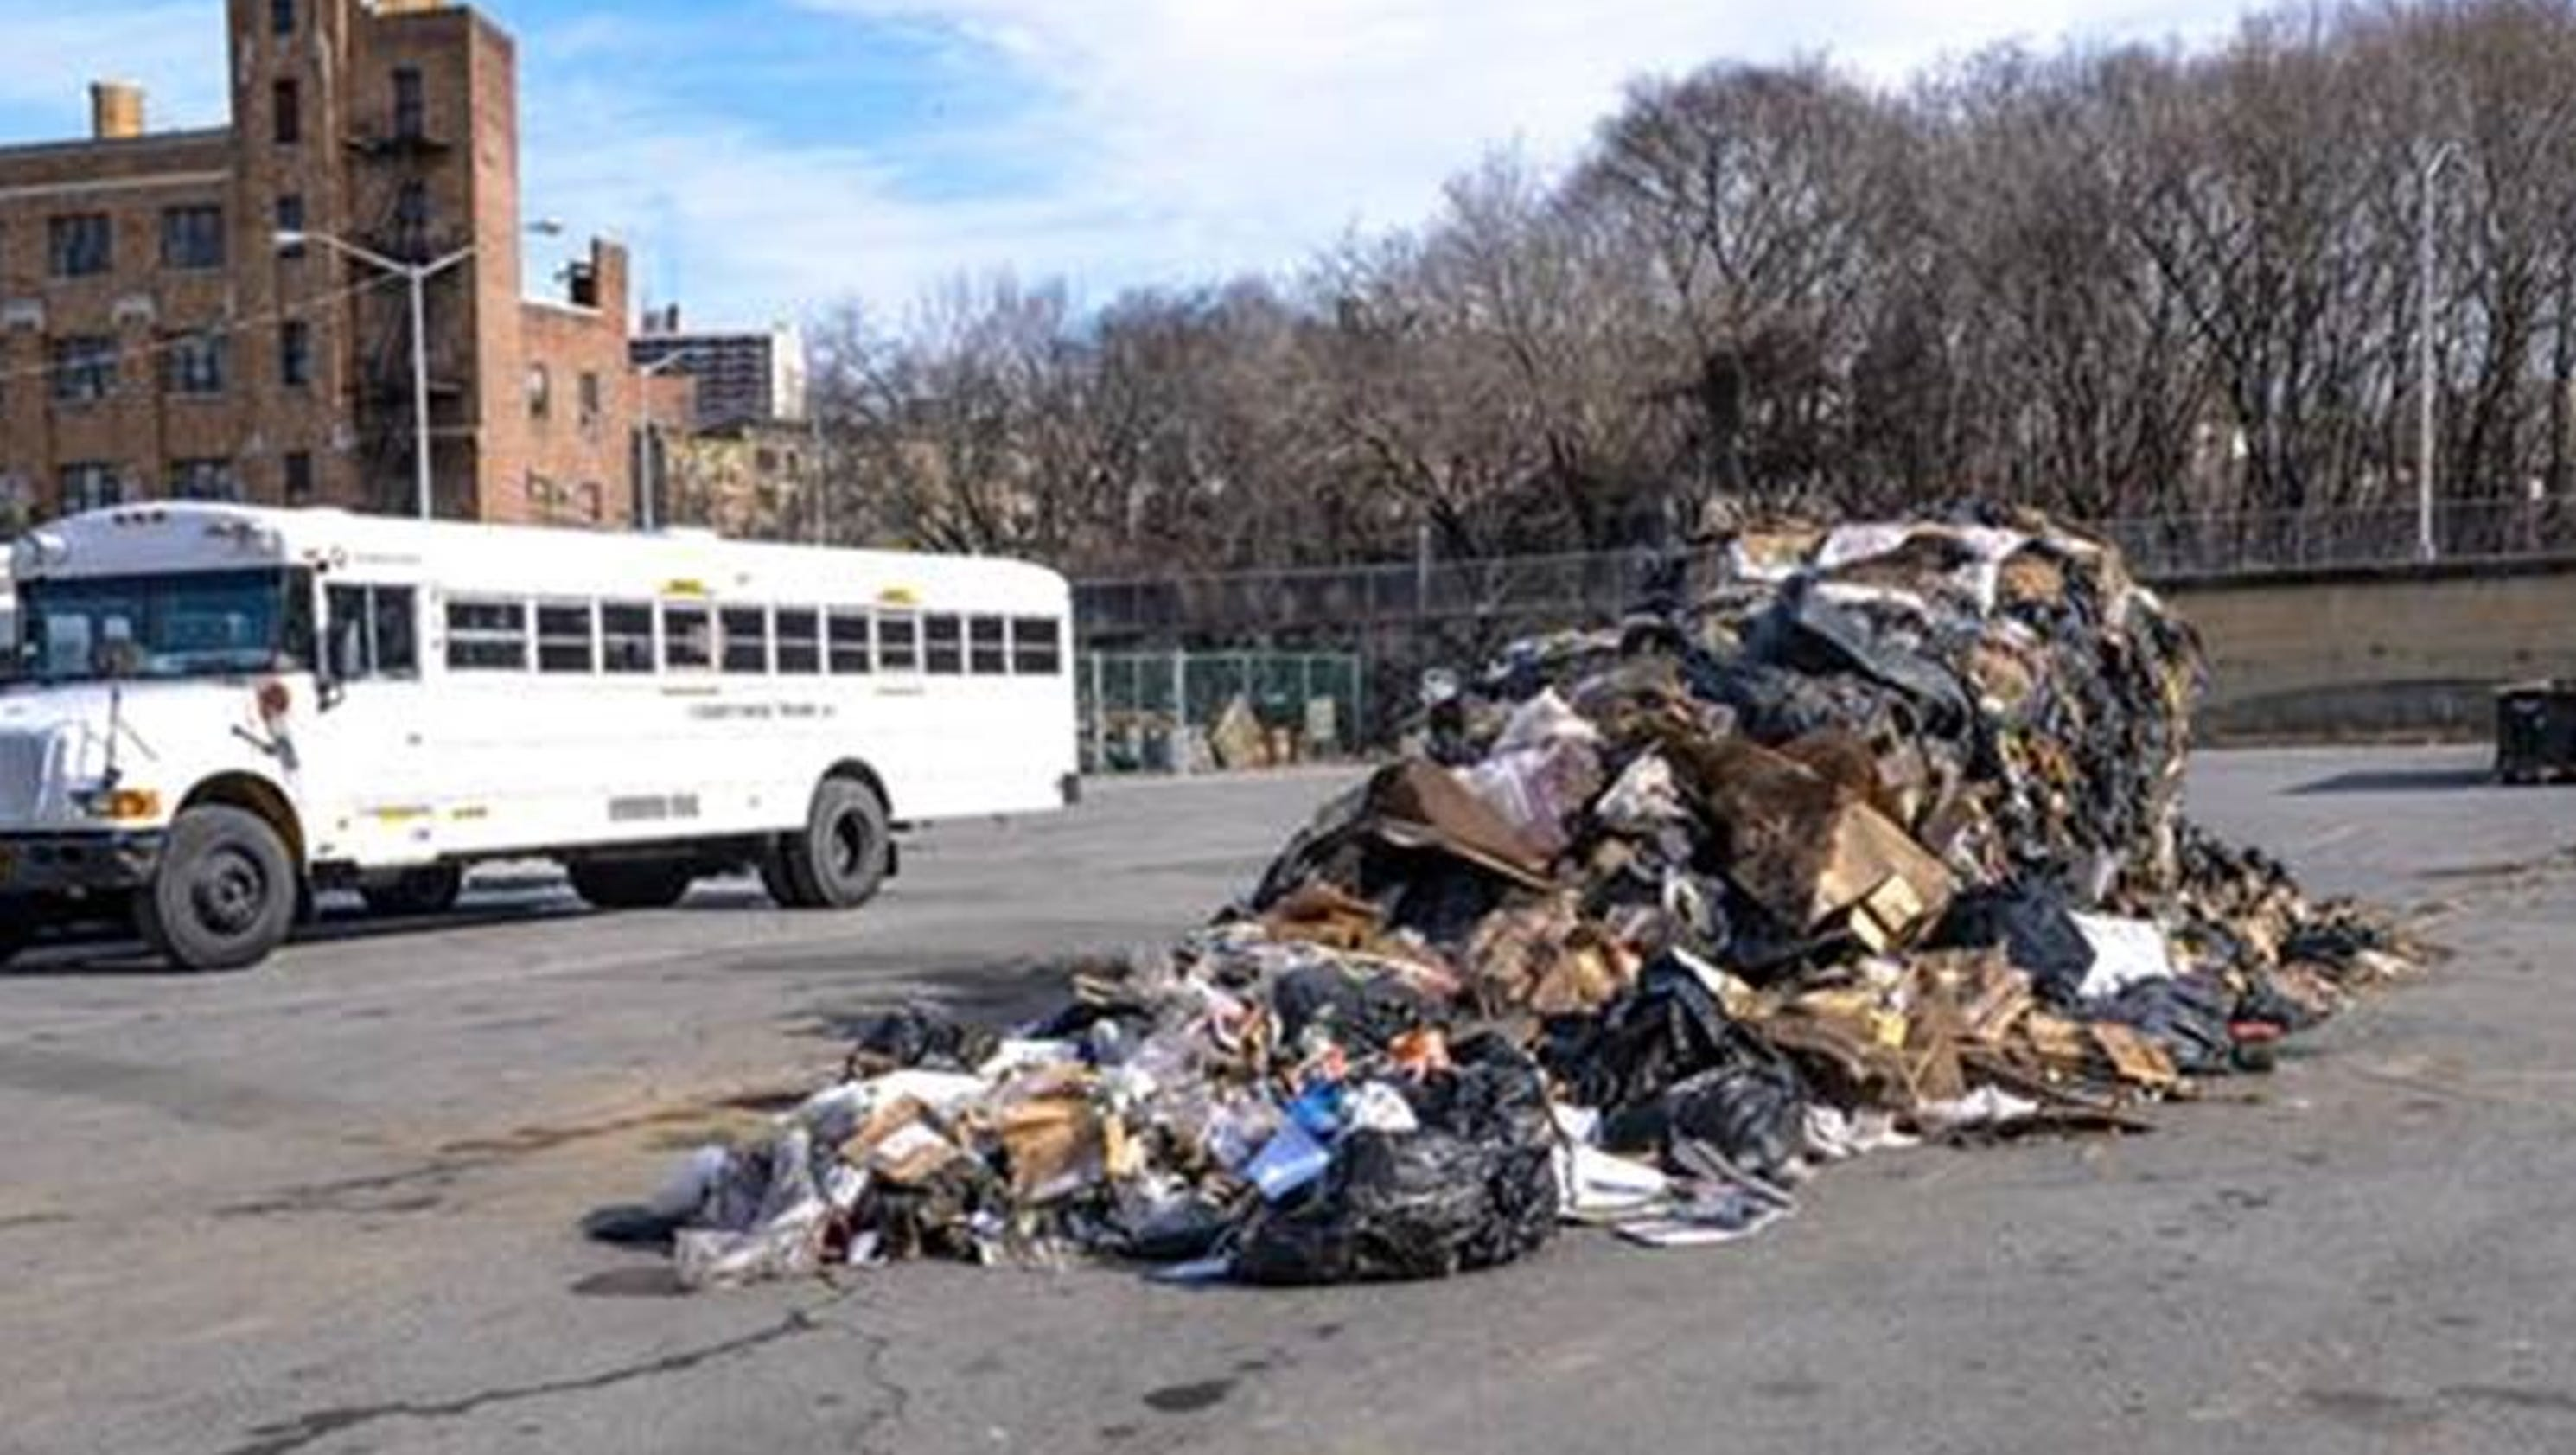 Croton man arrested for dumping 20 000 pounds of trash in Yonkers